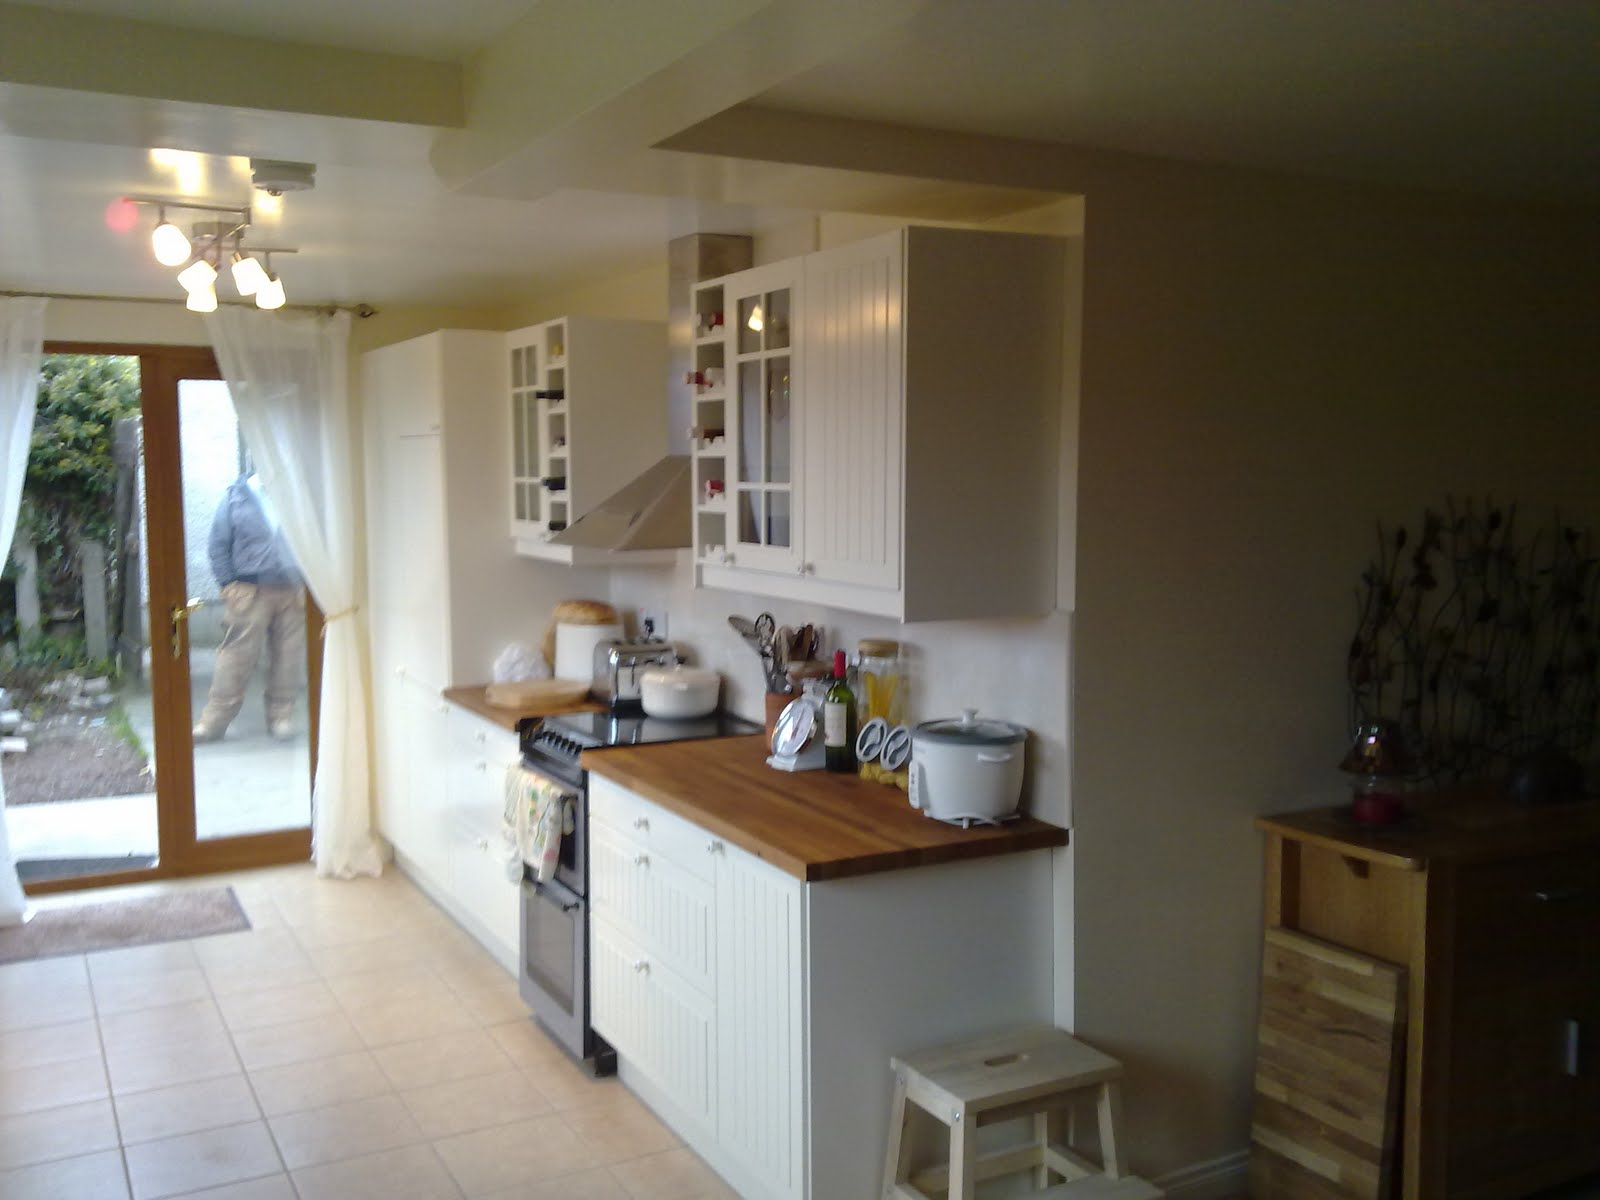 Kitchen And Bathroom Extension Photo 2